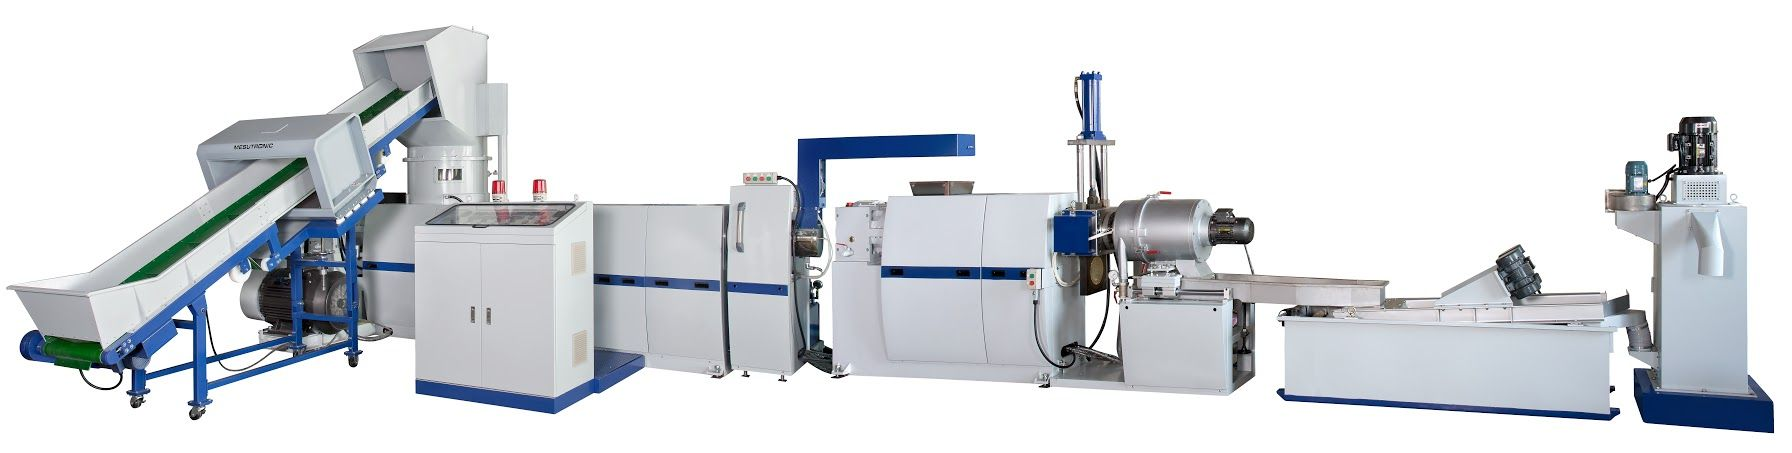 3-in-1 Shredder Intergrated Plastic Recycling & Pelletizing Machine incorporates the crusher, the extruder and the pelletizer, suitable for recycling soft plastics.